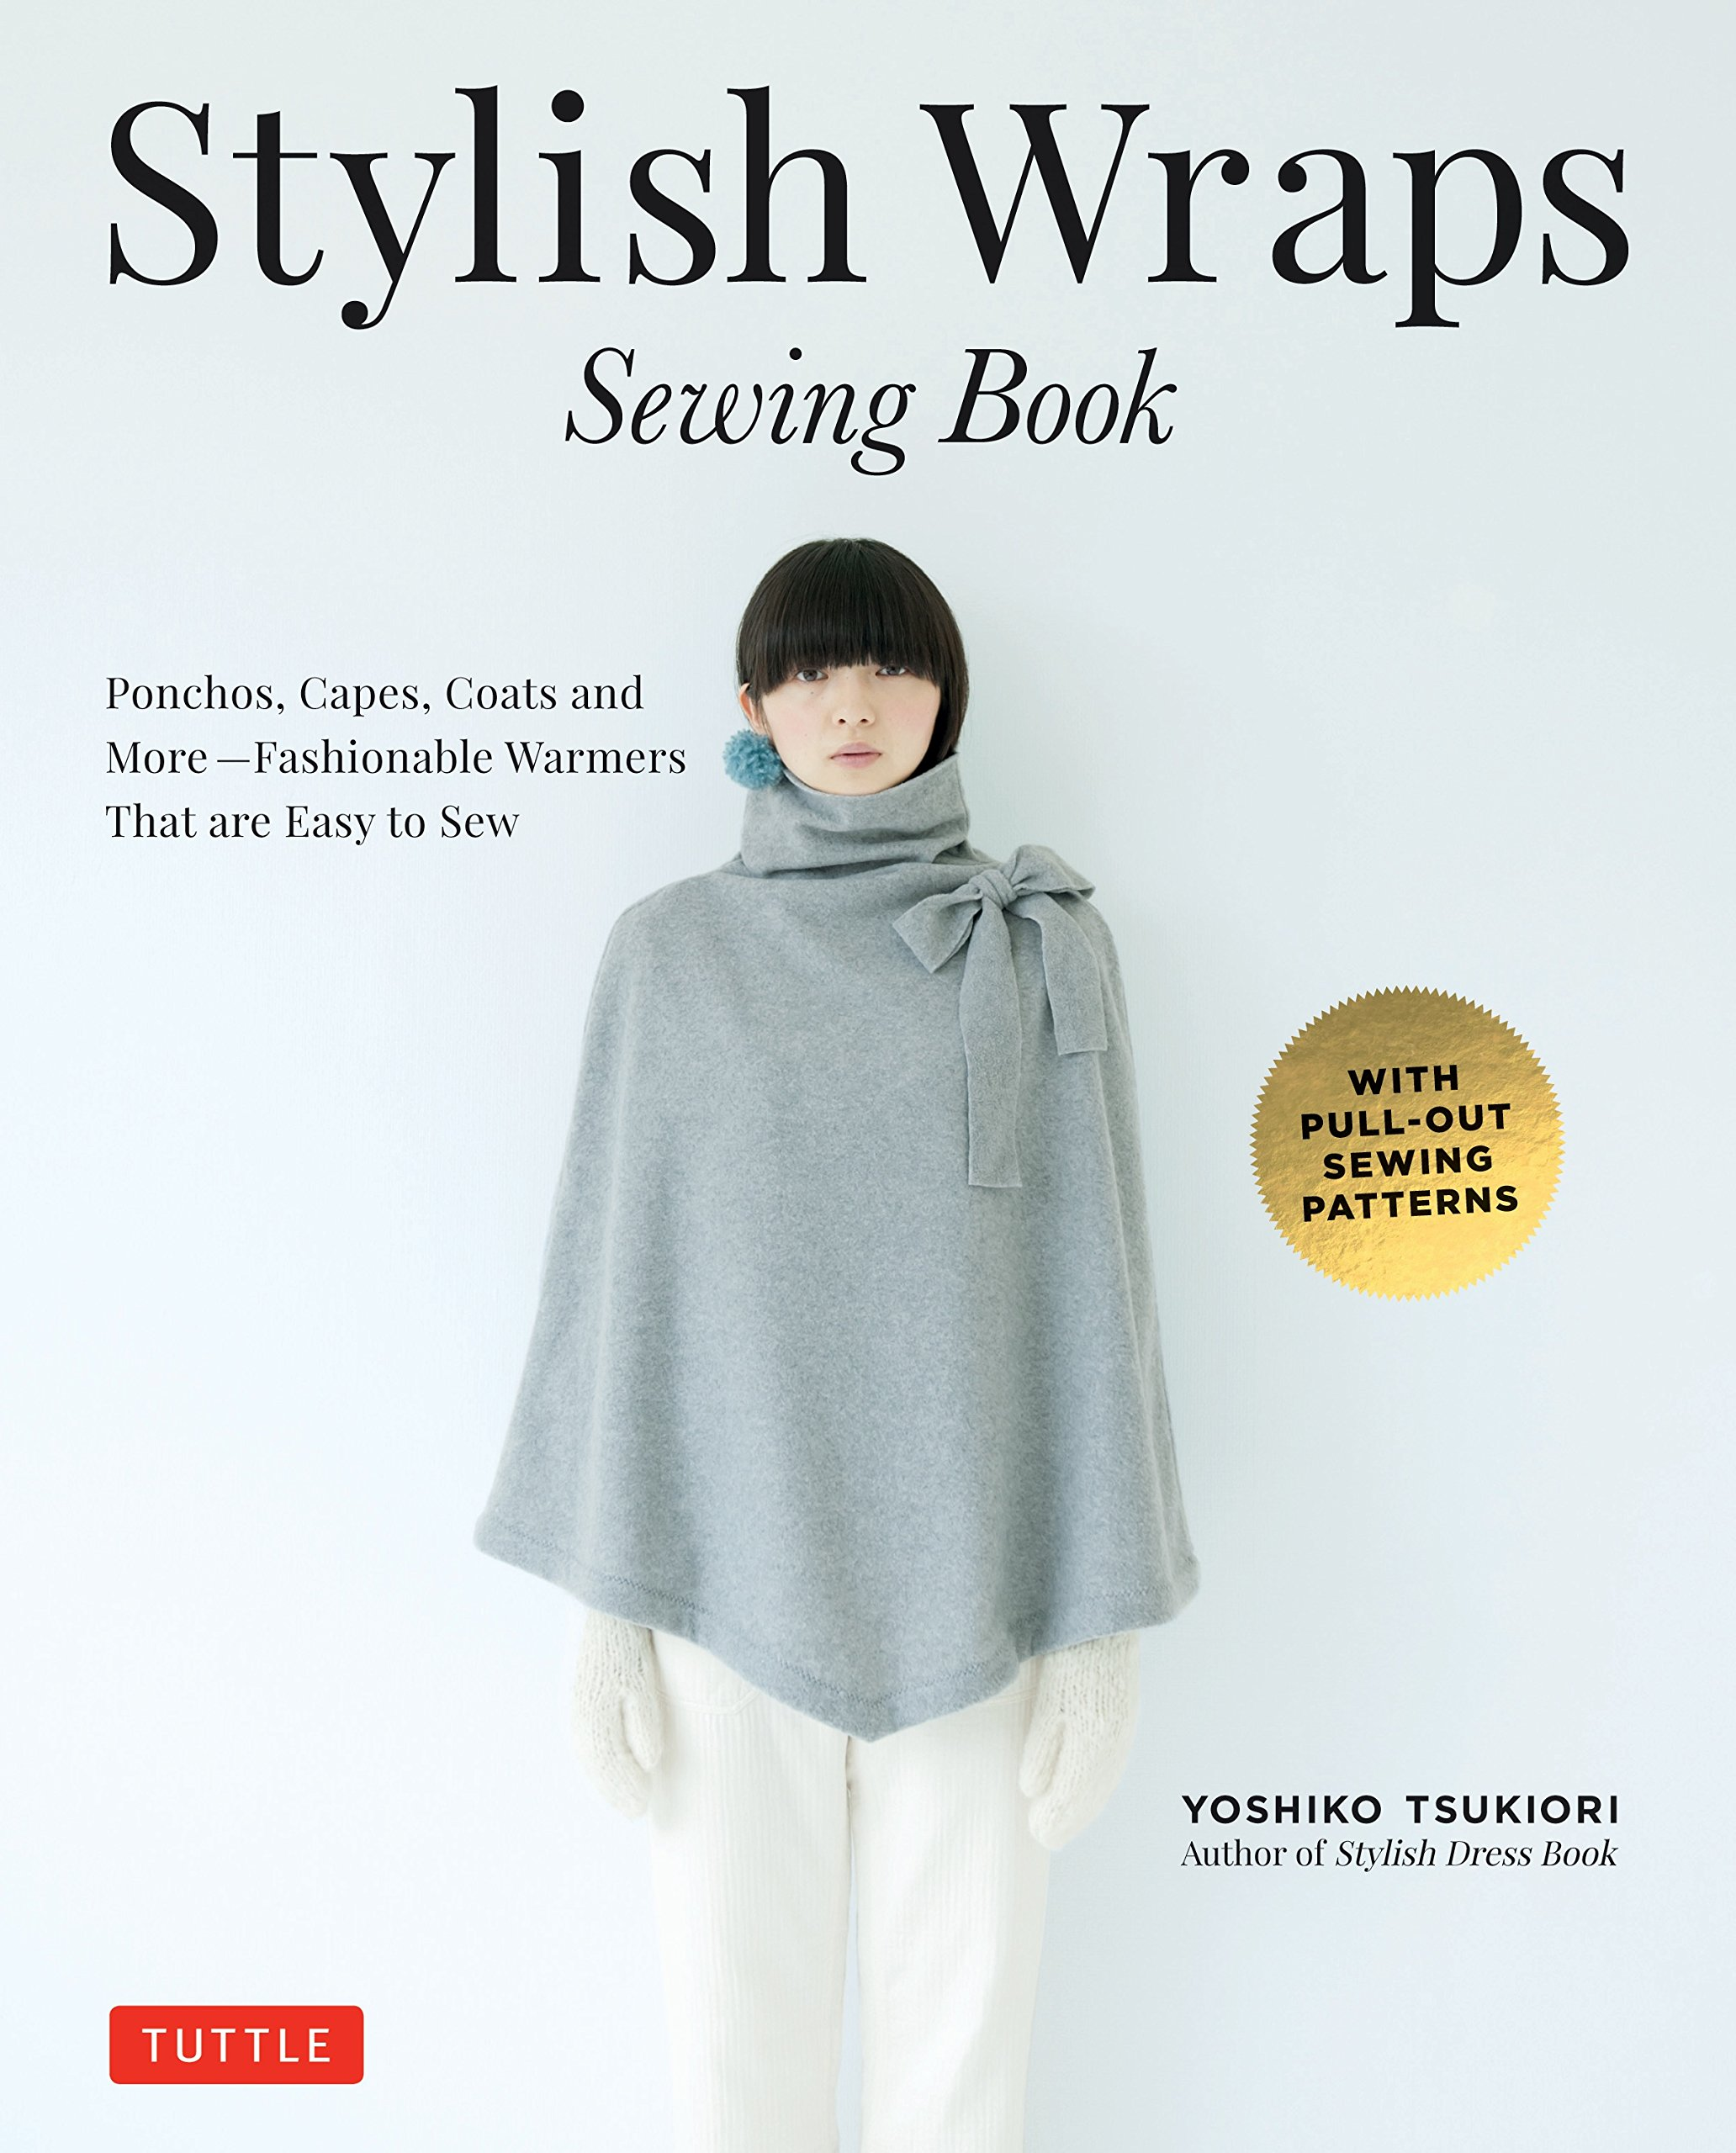 Stylish Wraps Sewing Book: Ponchos, Capes, Coats and More